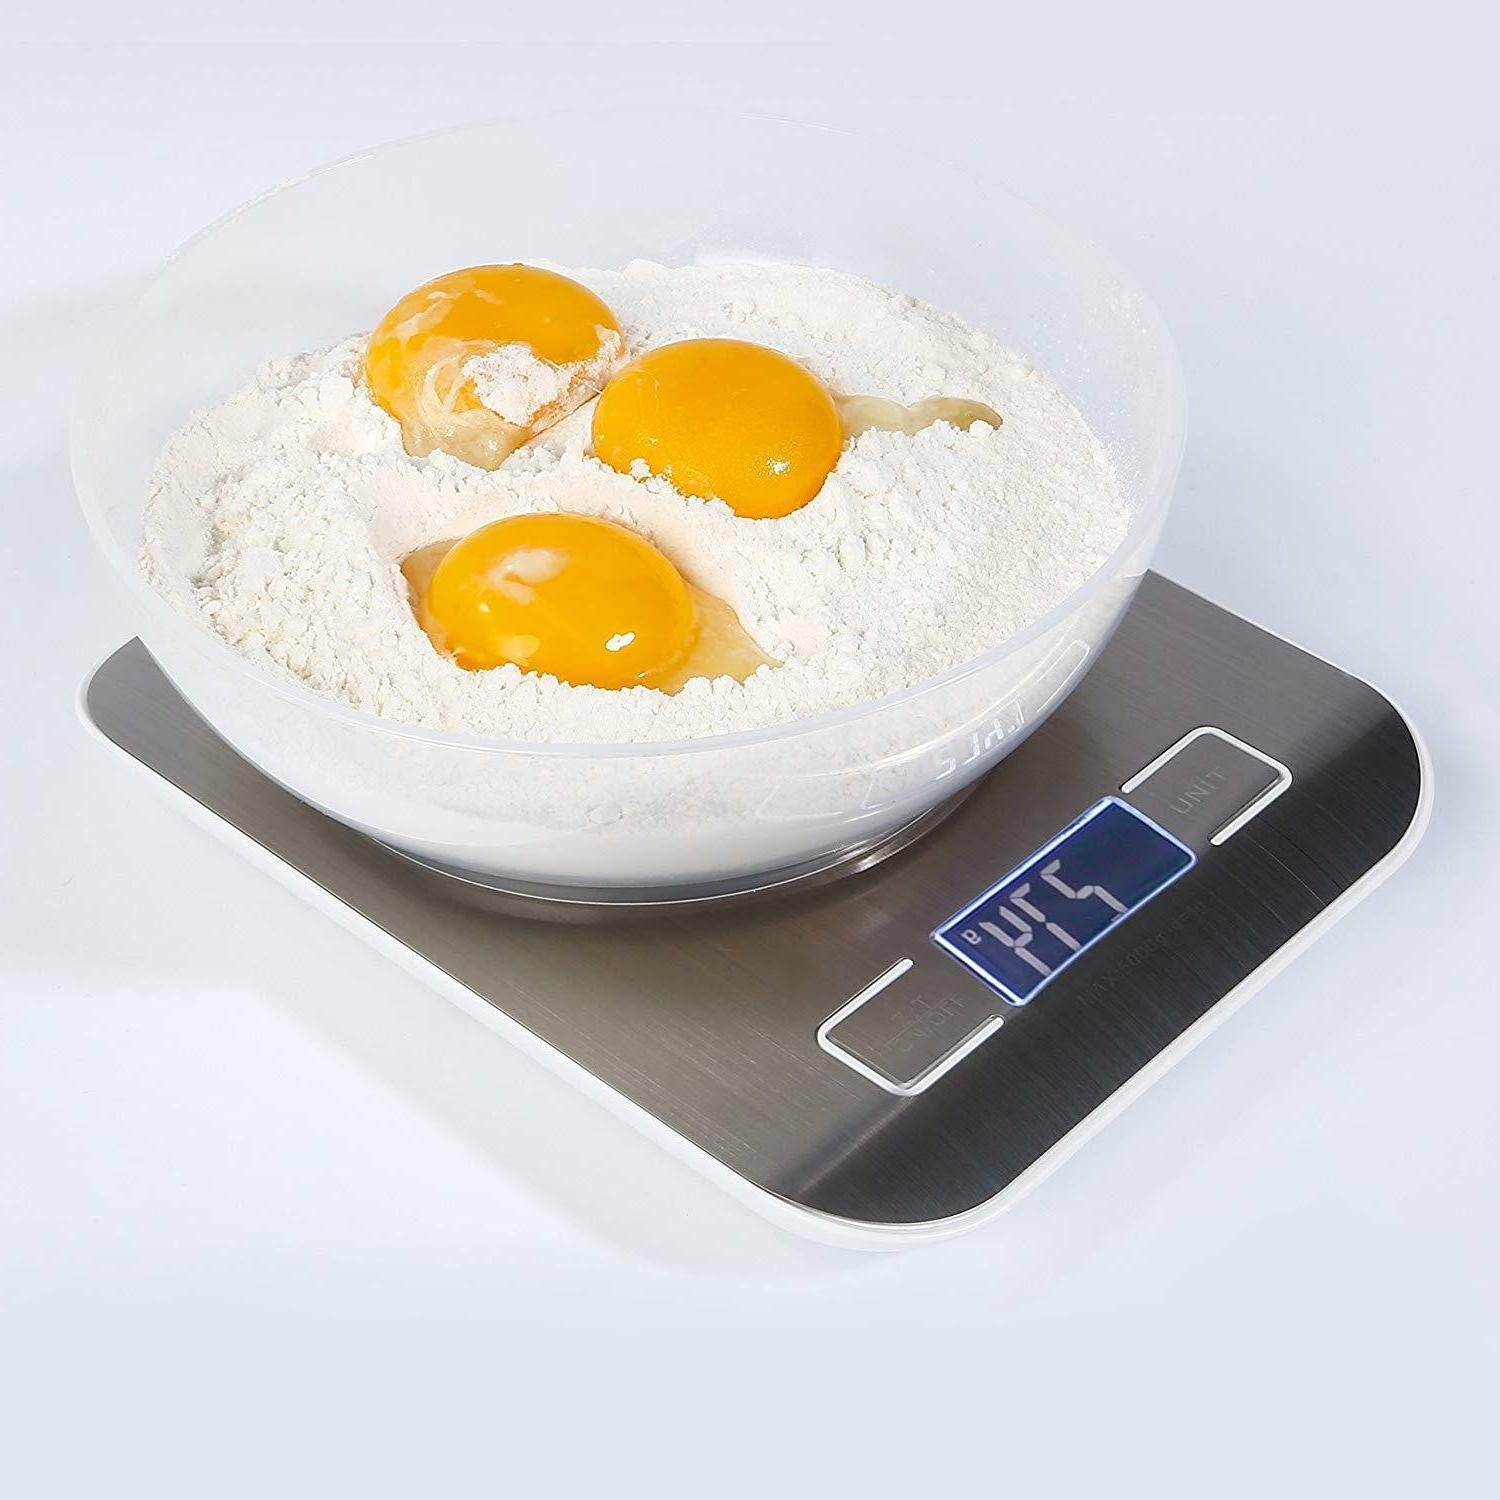 Kitchen Weighing Digital Gram Accurate NEW